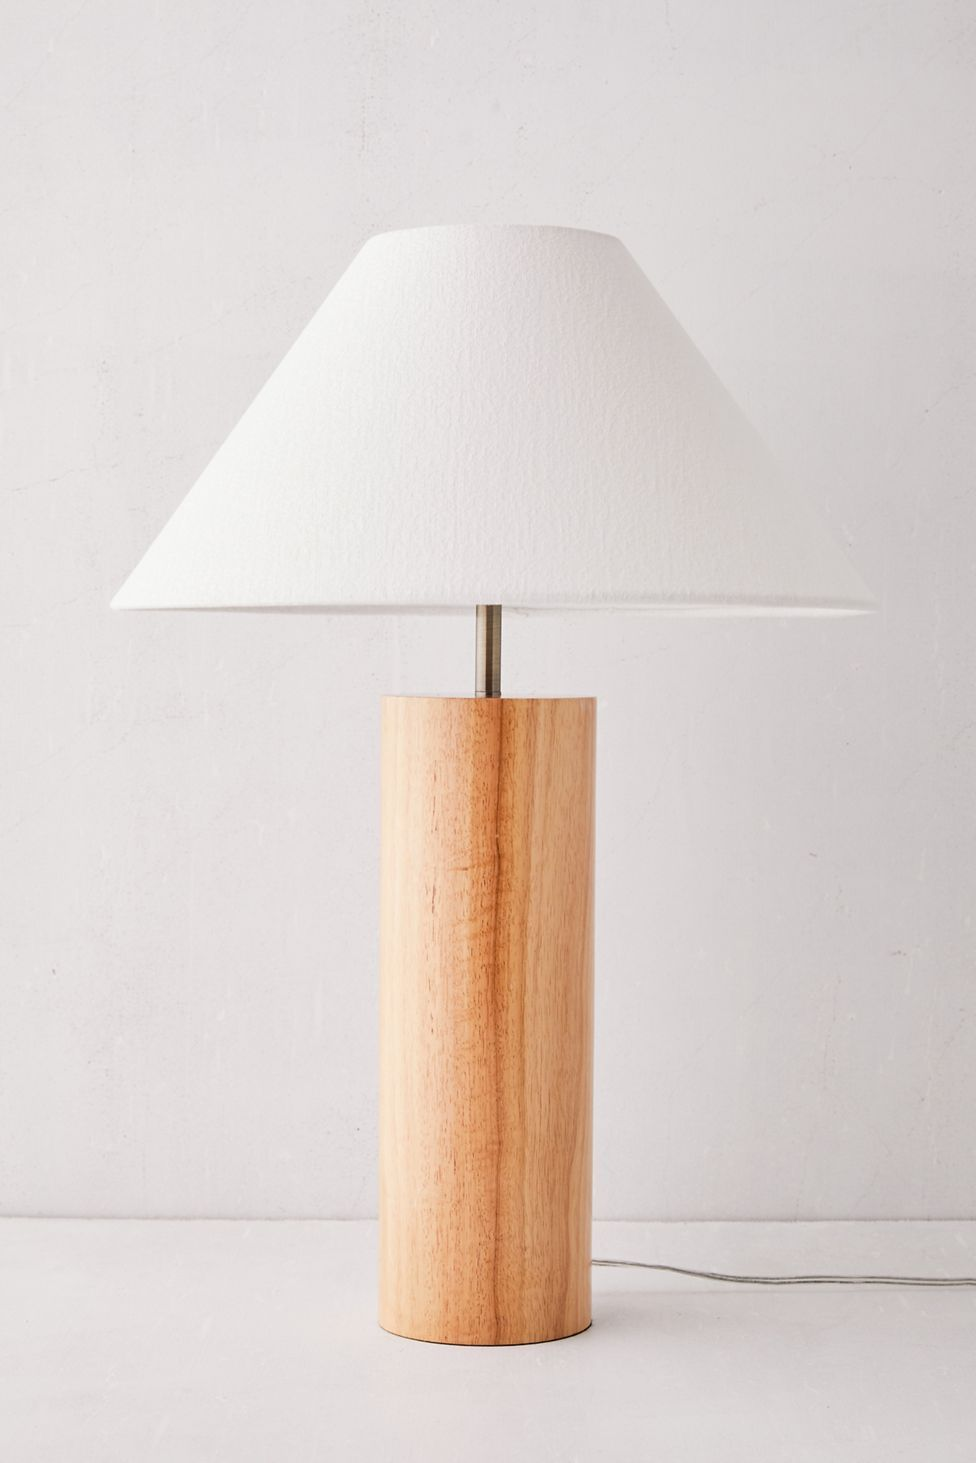 Pin By Indie Hannah Jones On Transitional Living Room In 2020 Table Lamp Wood Table Lamp Lamp #wood #table #lamps #living #room